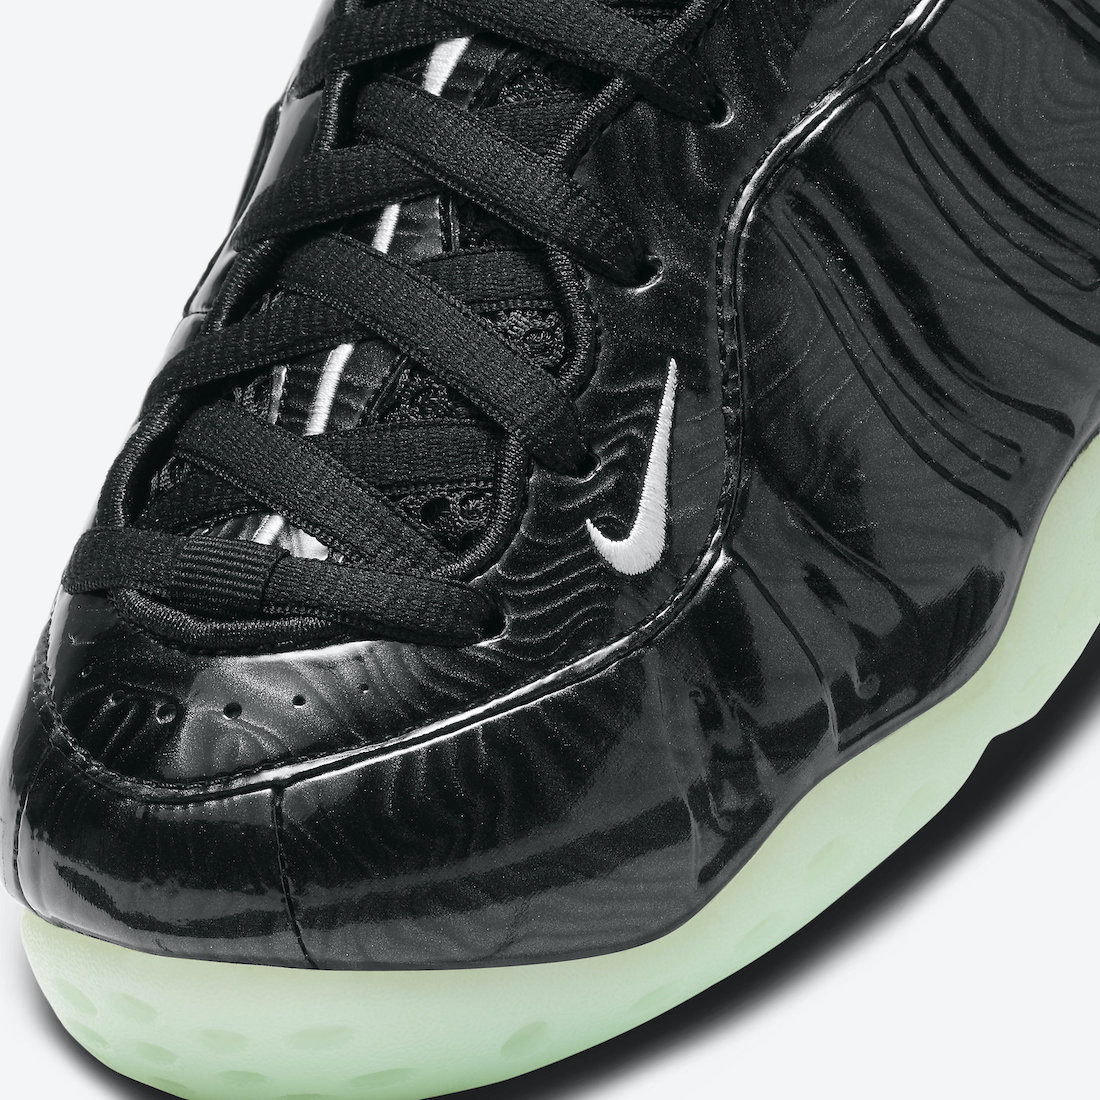 Nike-Air-Foamposite-One-All-Star-2021-CV1766-001-Release-Date-Price-6